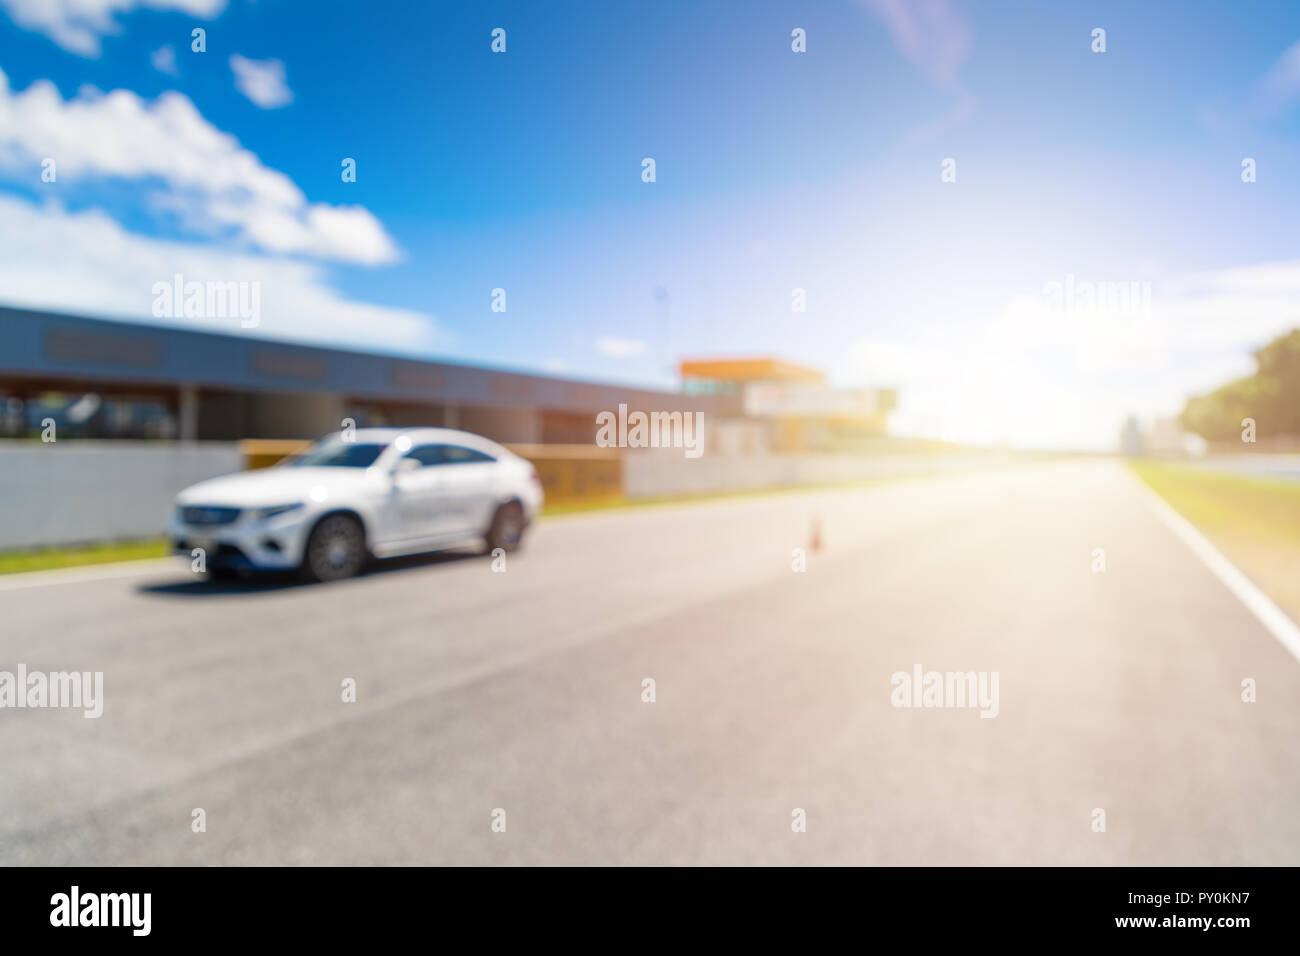 Abstract blur and bokeh. White Luxury car in racetrack and speed racing back ground clear sky. Sunlight and flare concept. - Stock Image